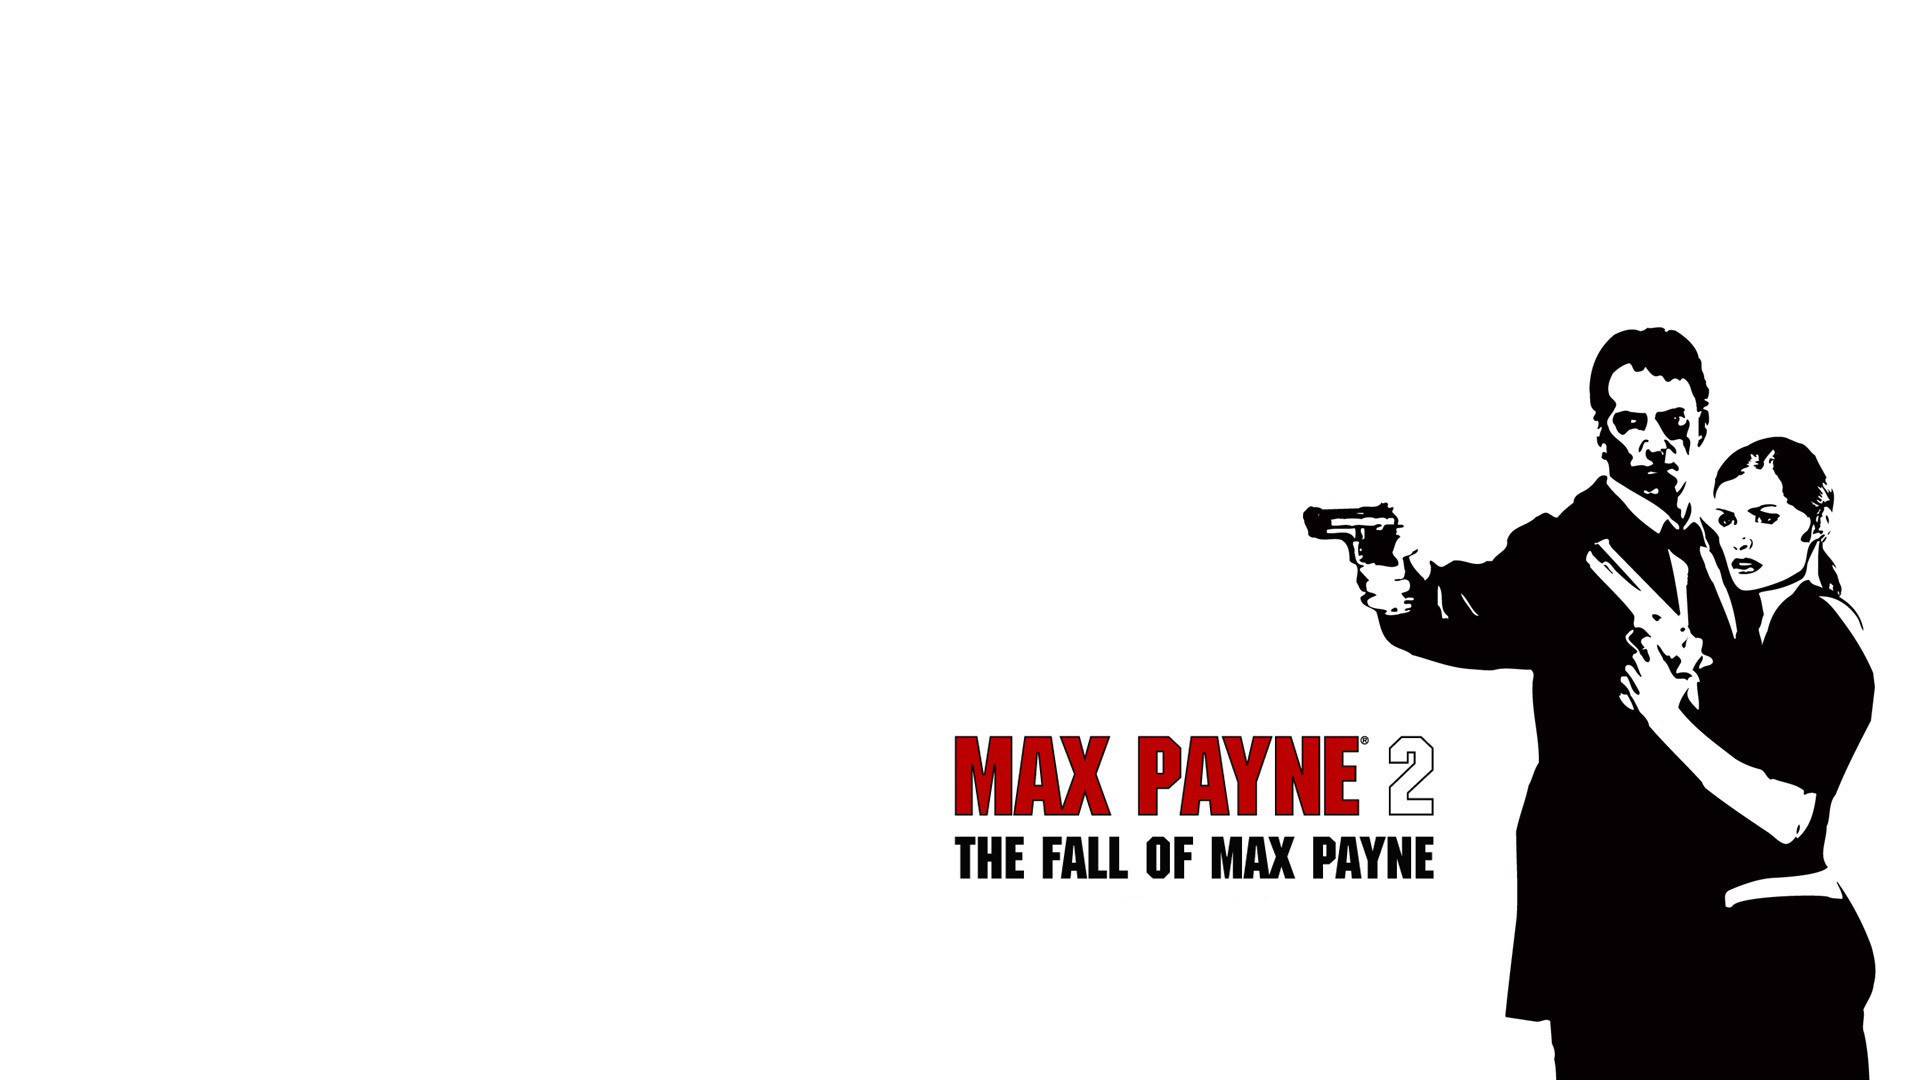 1920x1080  Max Payne 2: The Fall of Max Payne Wallpaper in